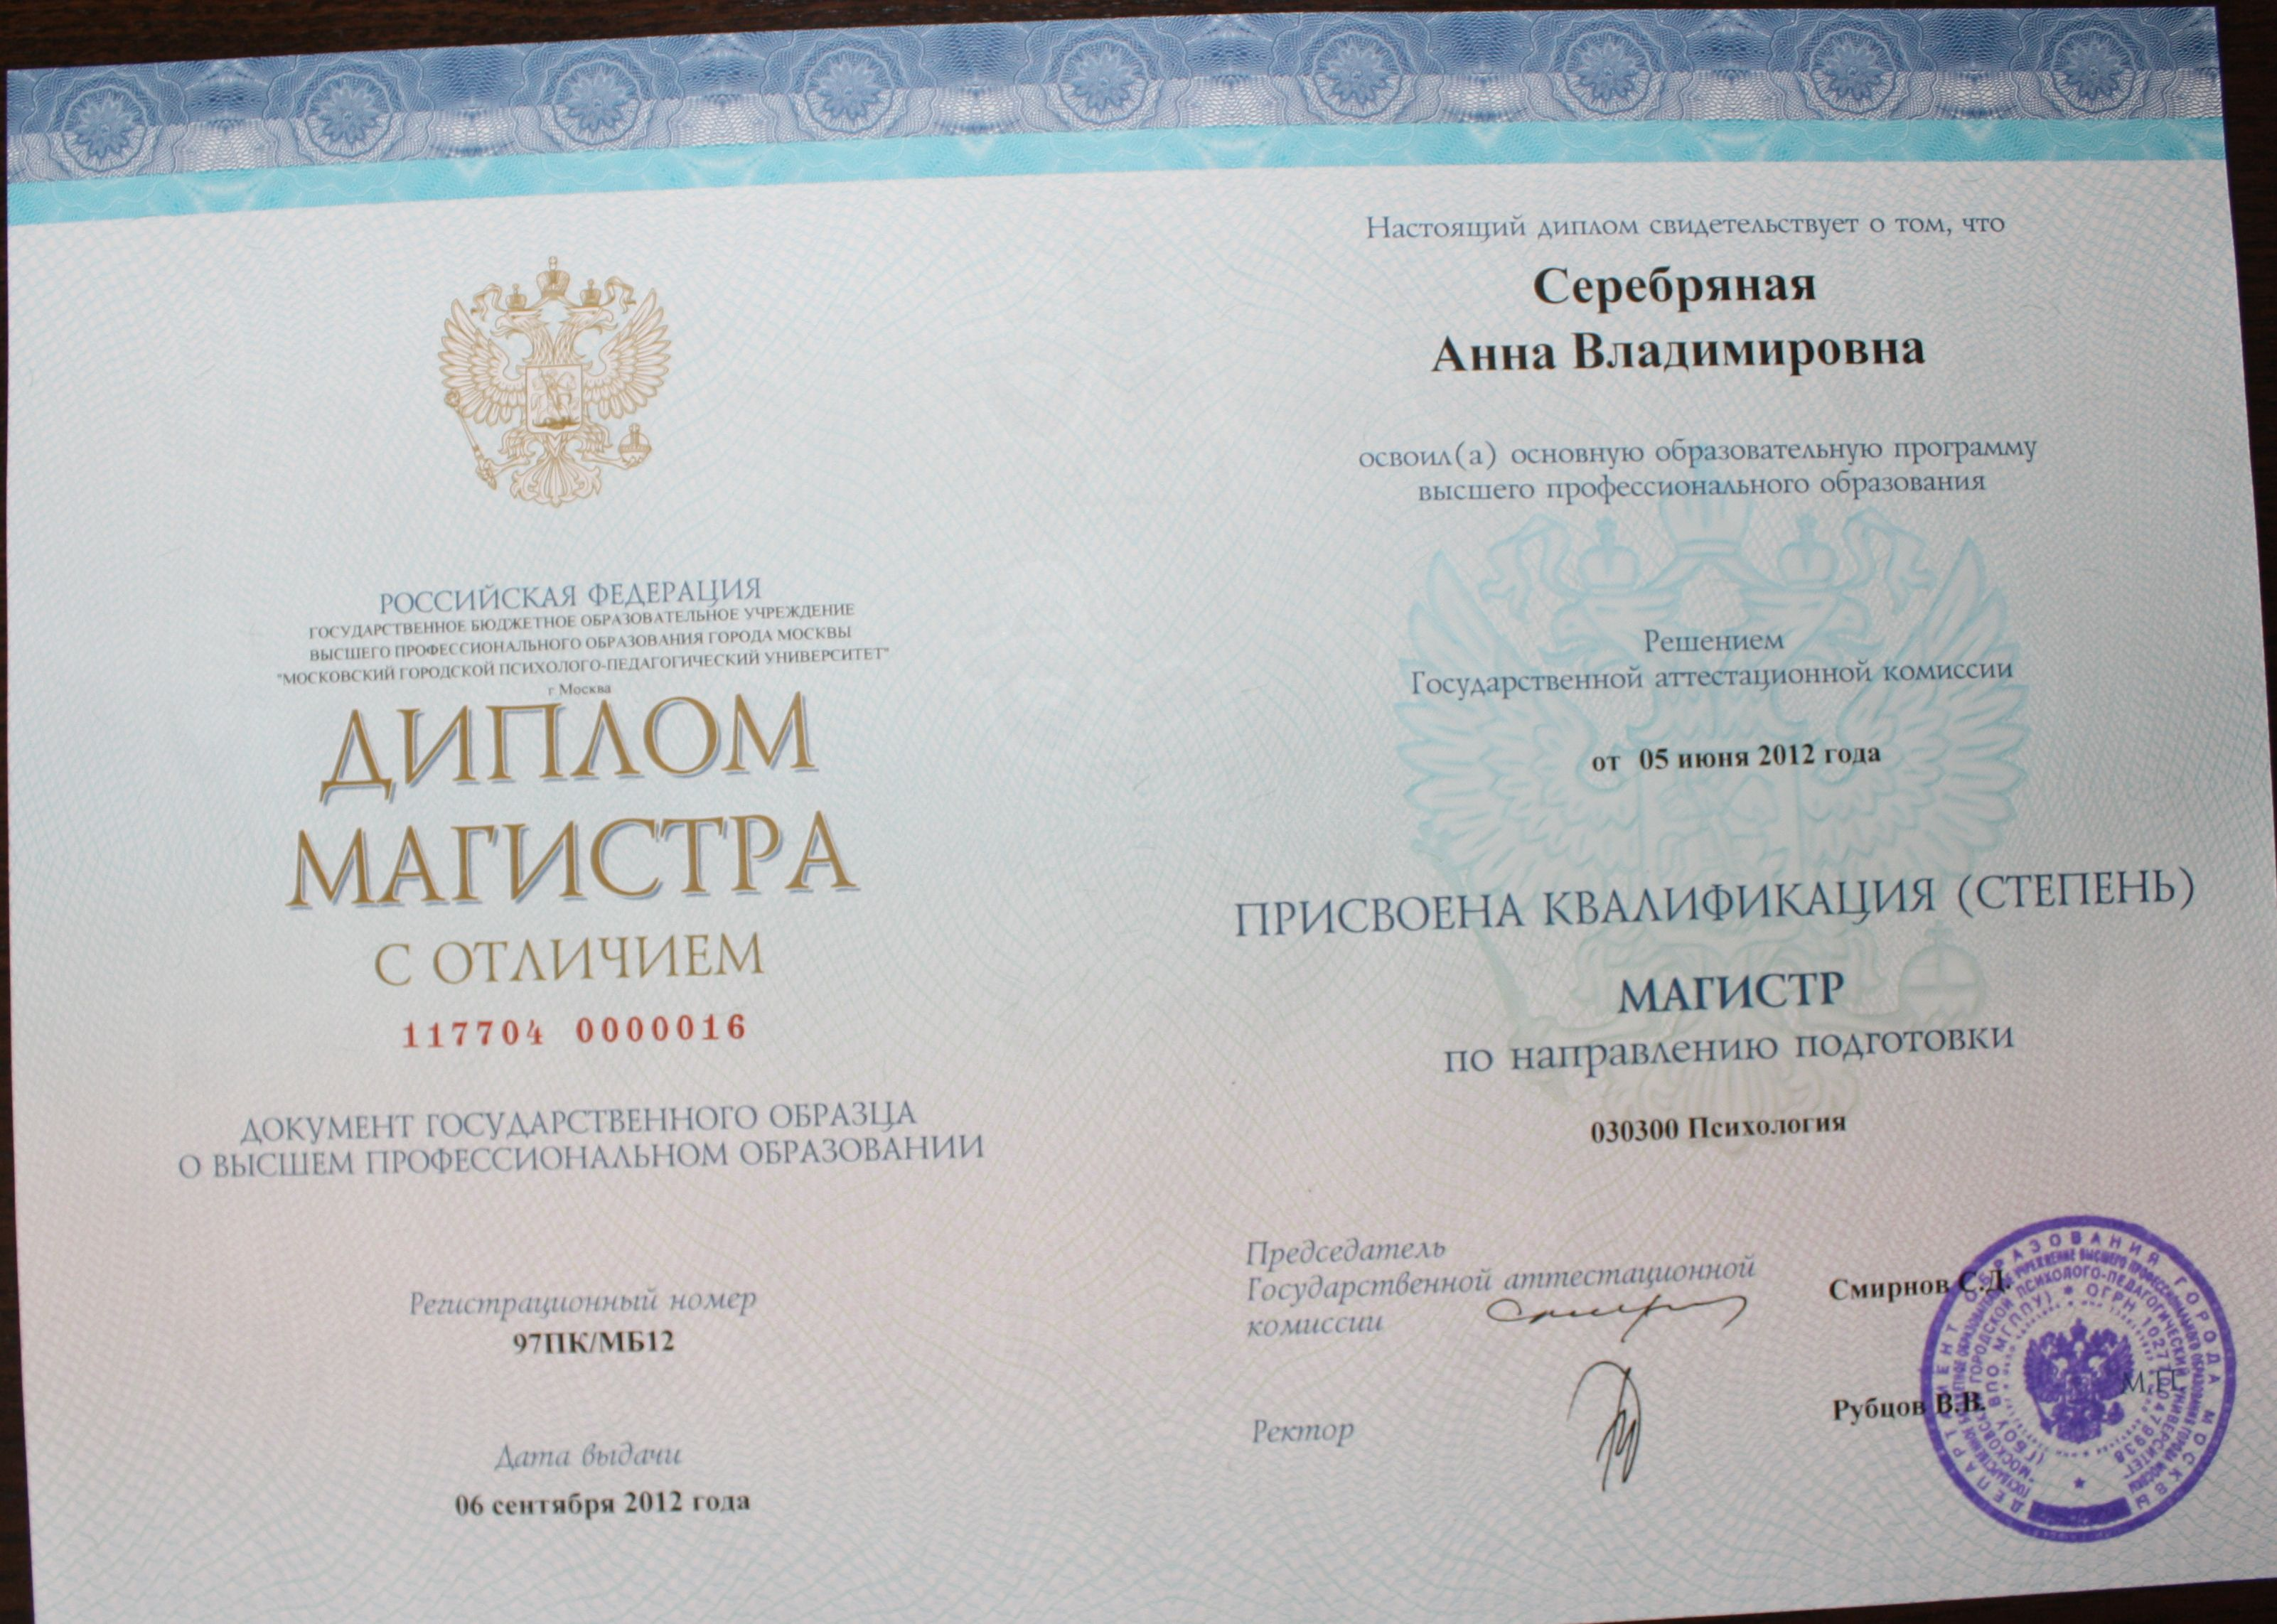 Психолог когнитивно бихевиоральный терапевт 2010 2012 moscow state university of psychology and education moscow russia master s degree in counselling psychology